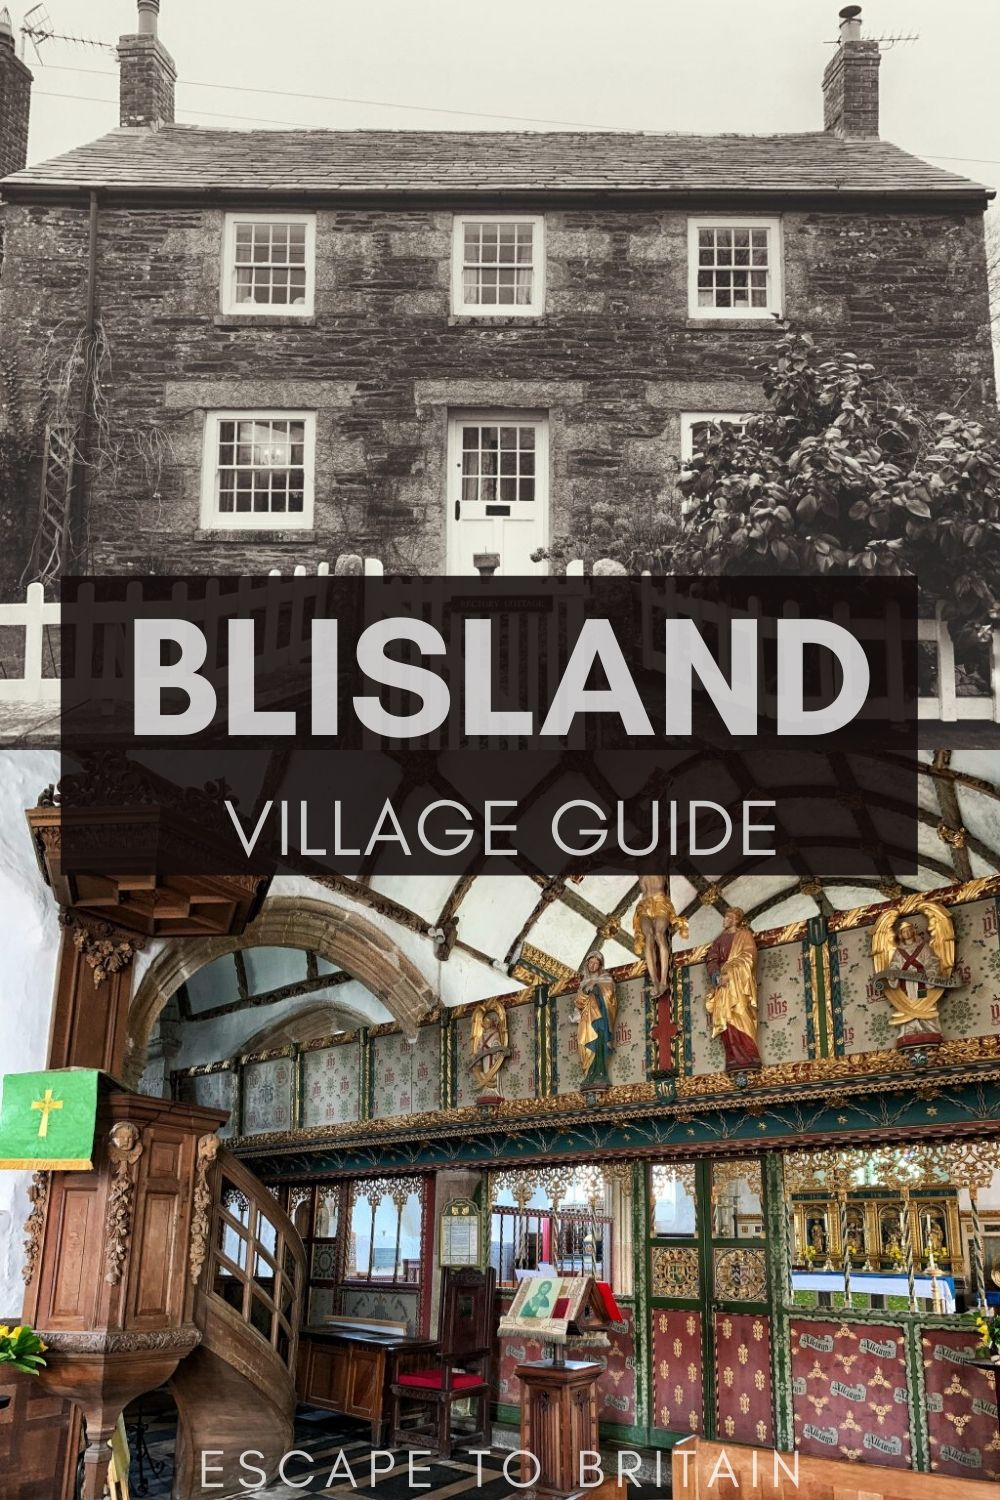 Blisland - A Beautiful Historic Village on Bodmin Moor/ things to do in Blisland Cornwall England